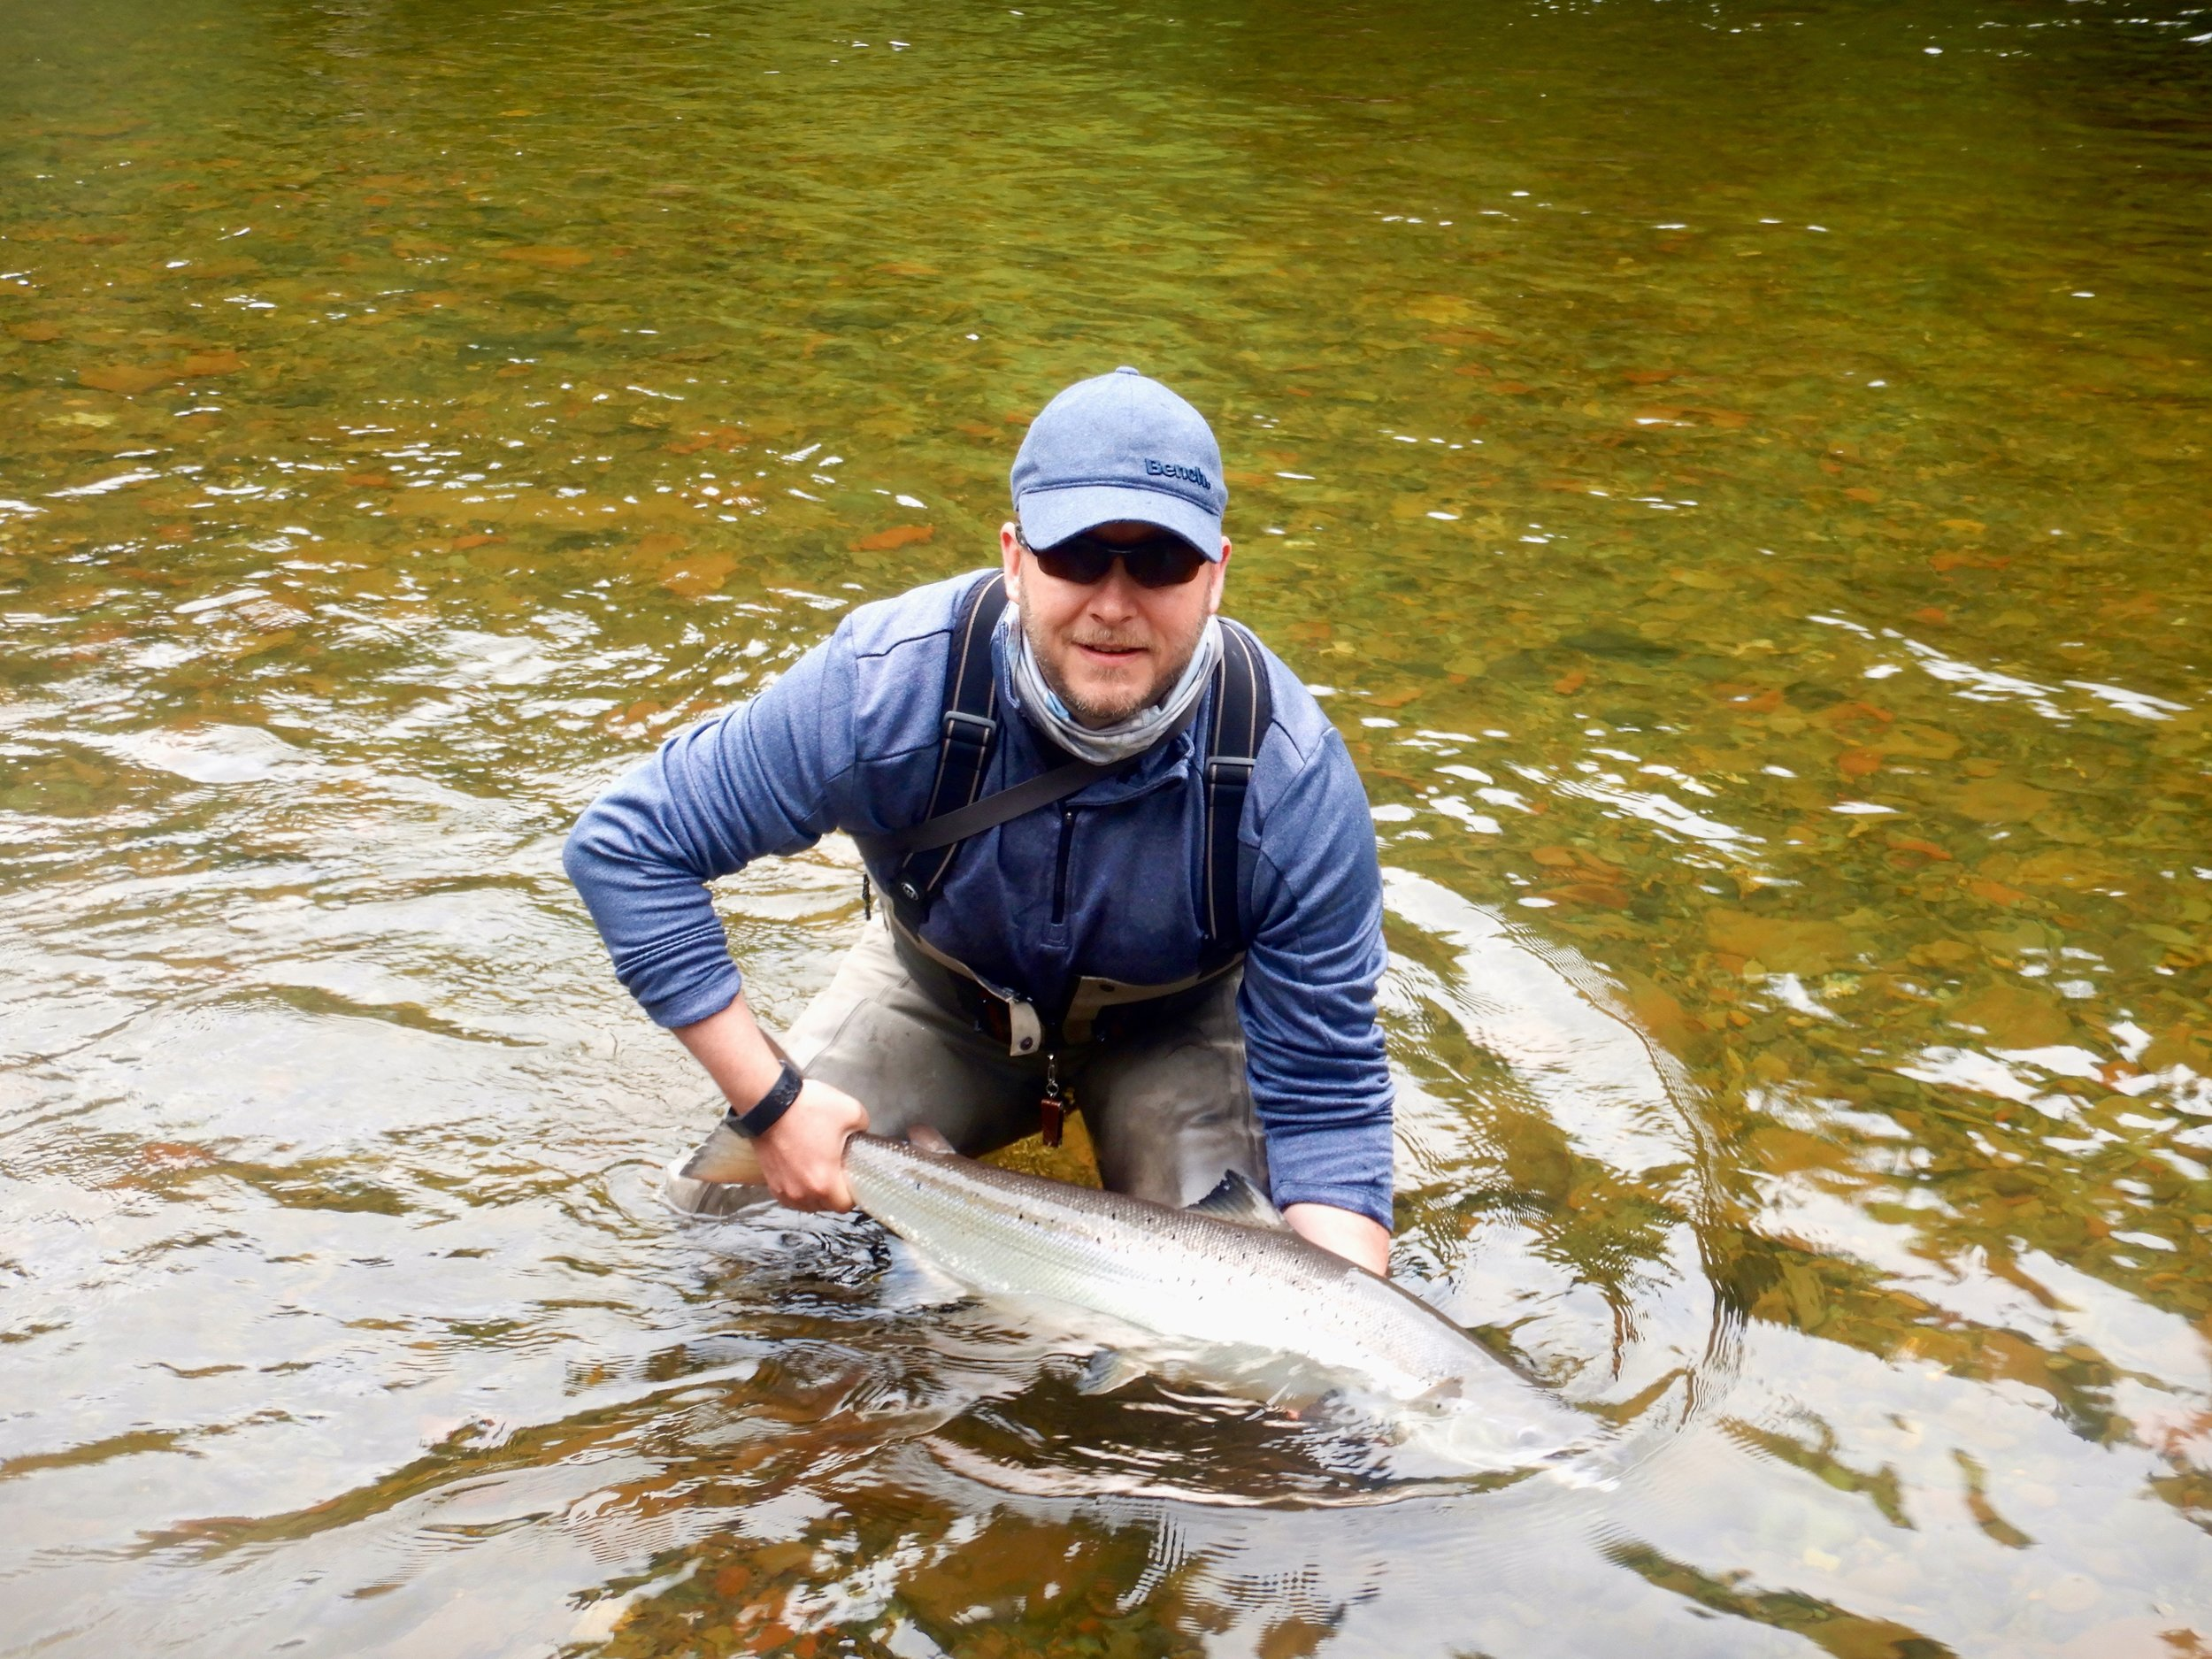 T his was Steve Osbourne's first trip to Salmon Lodge, he already booked for next year! Well done Steve.